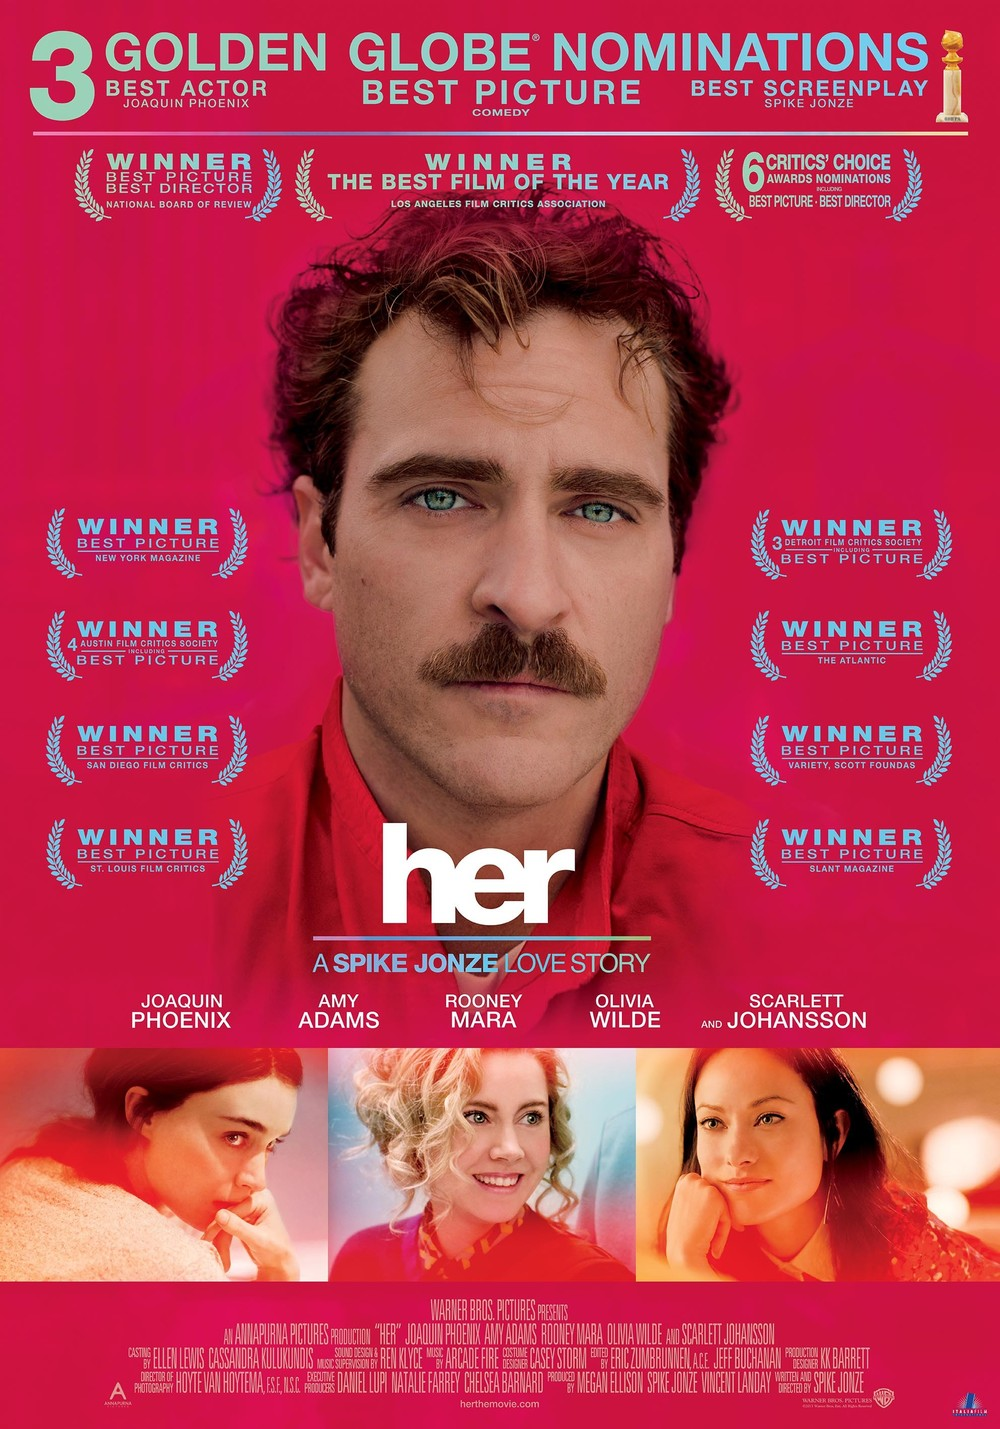 Her Poster Jonze Images